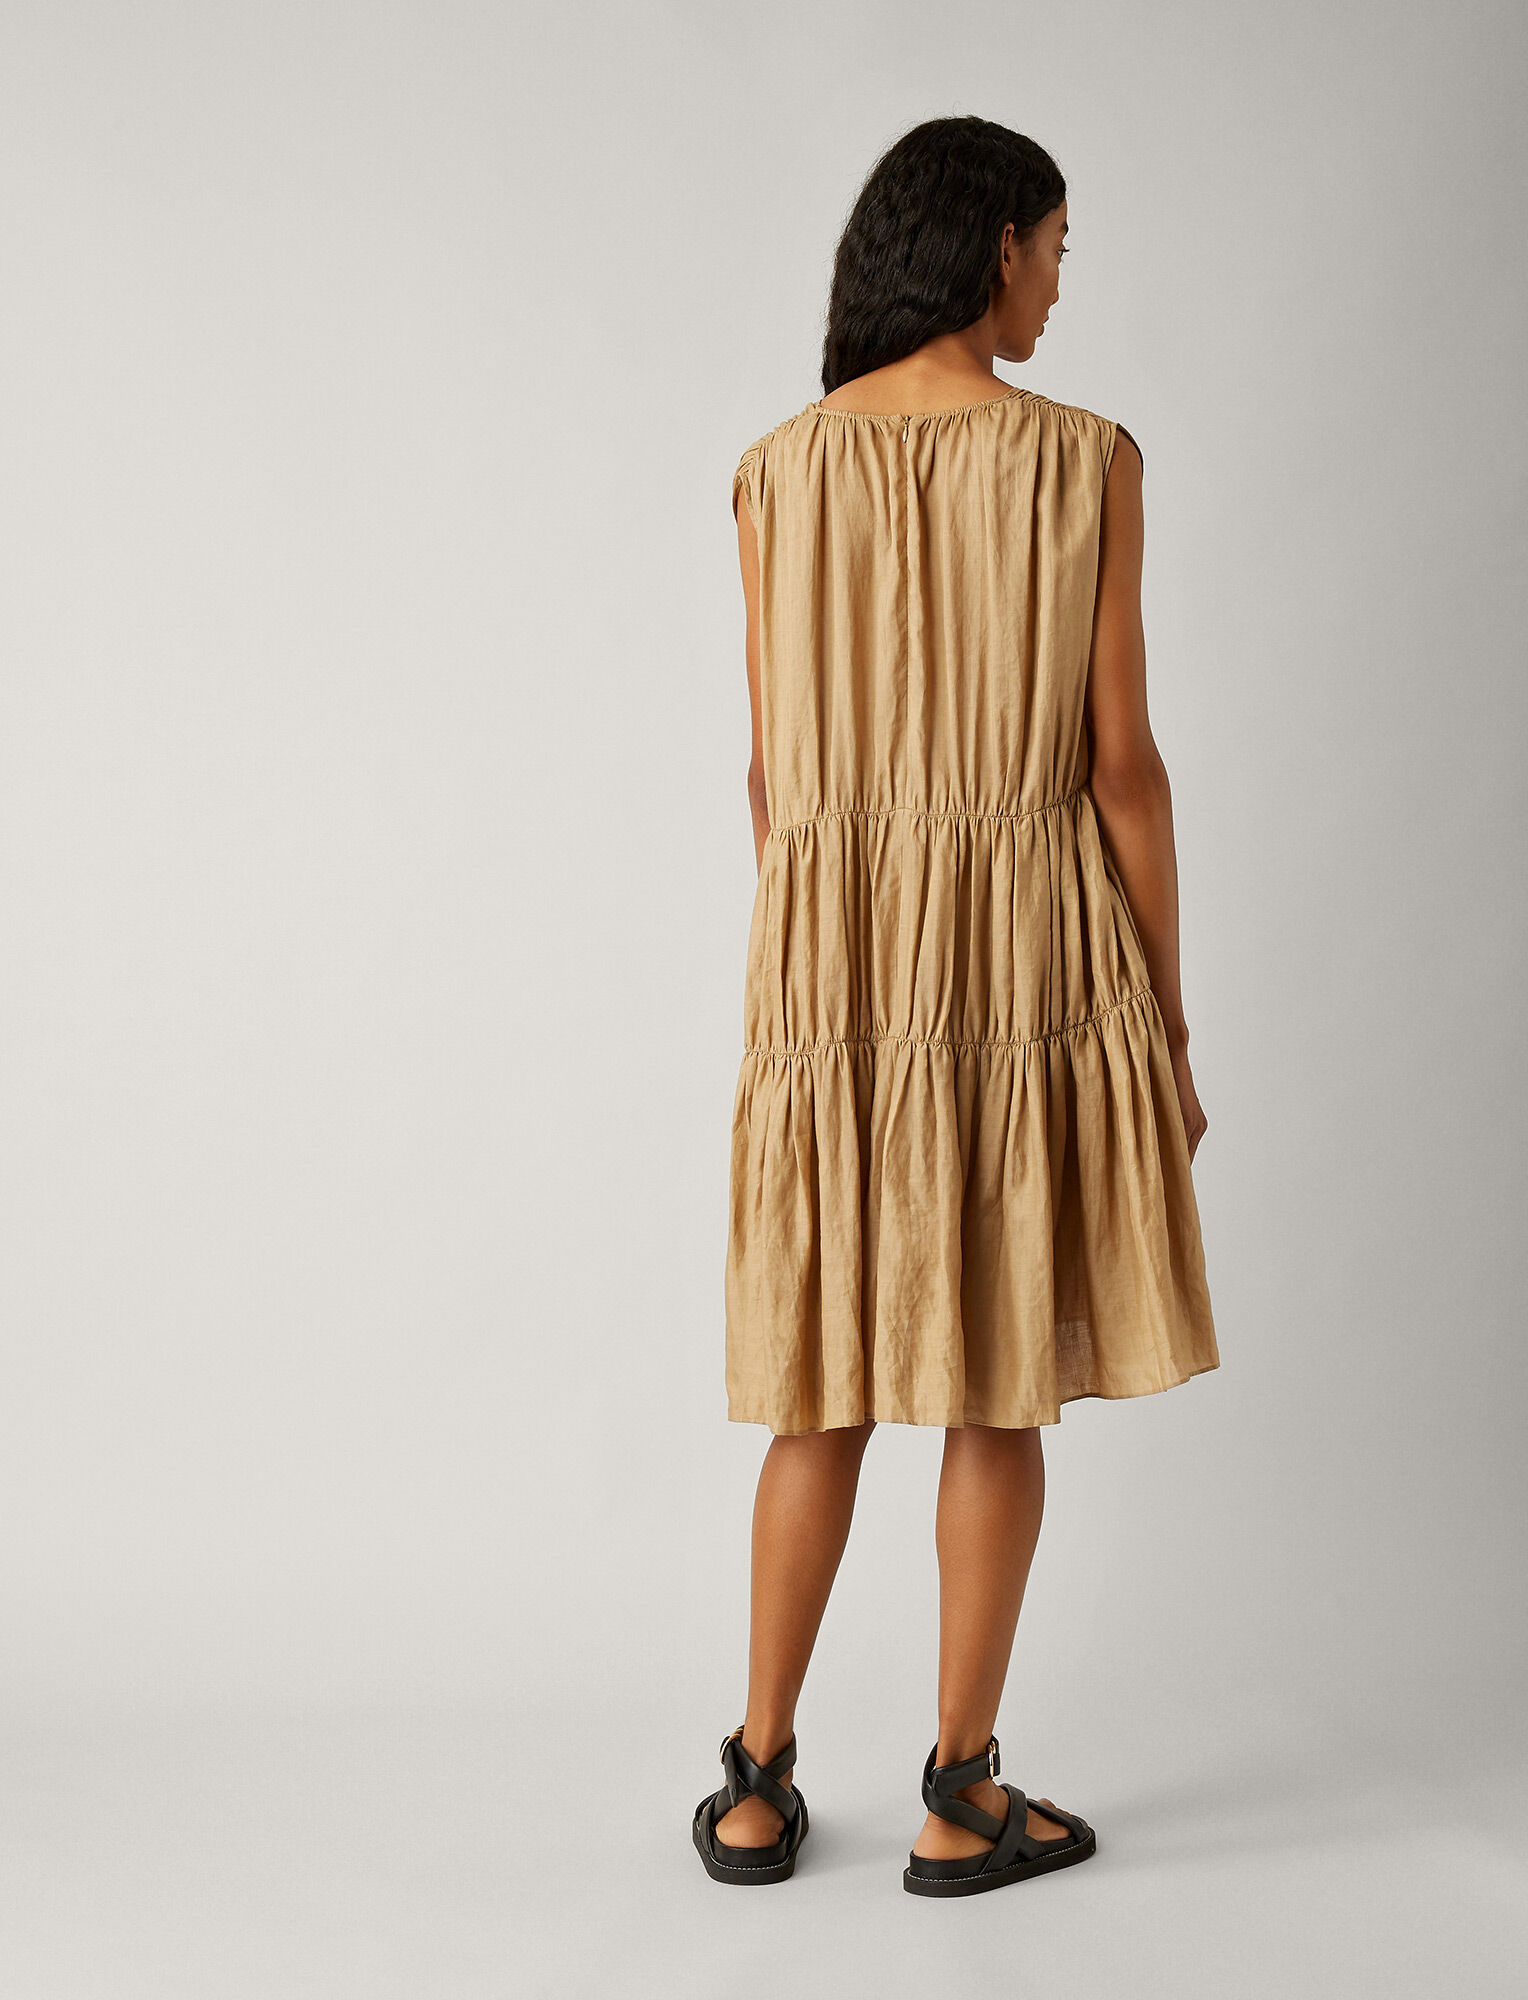 Joseph, Lema Ramie Voile Plisse Dress, in TAN